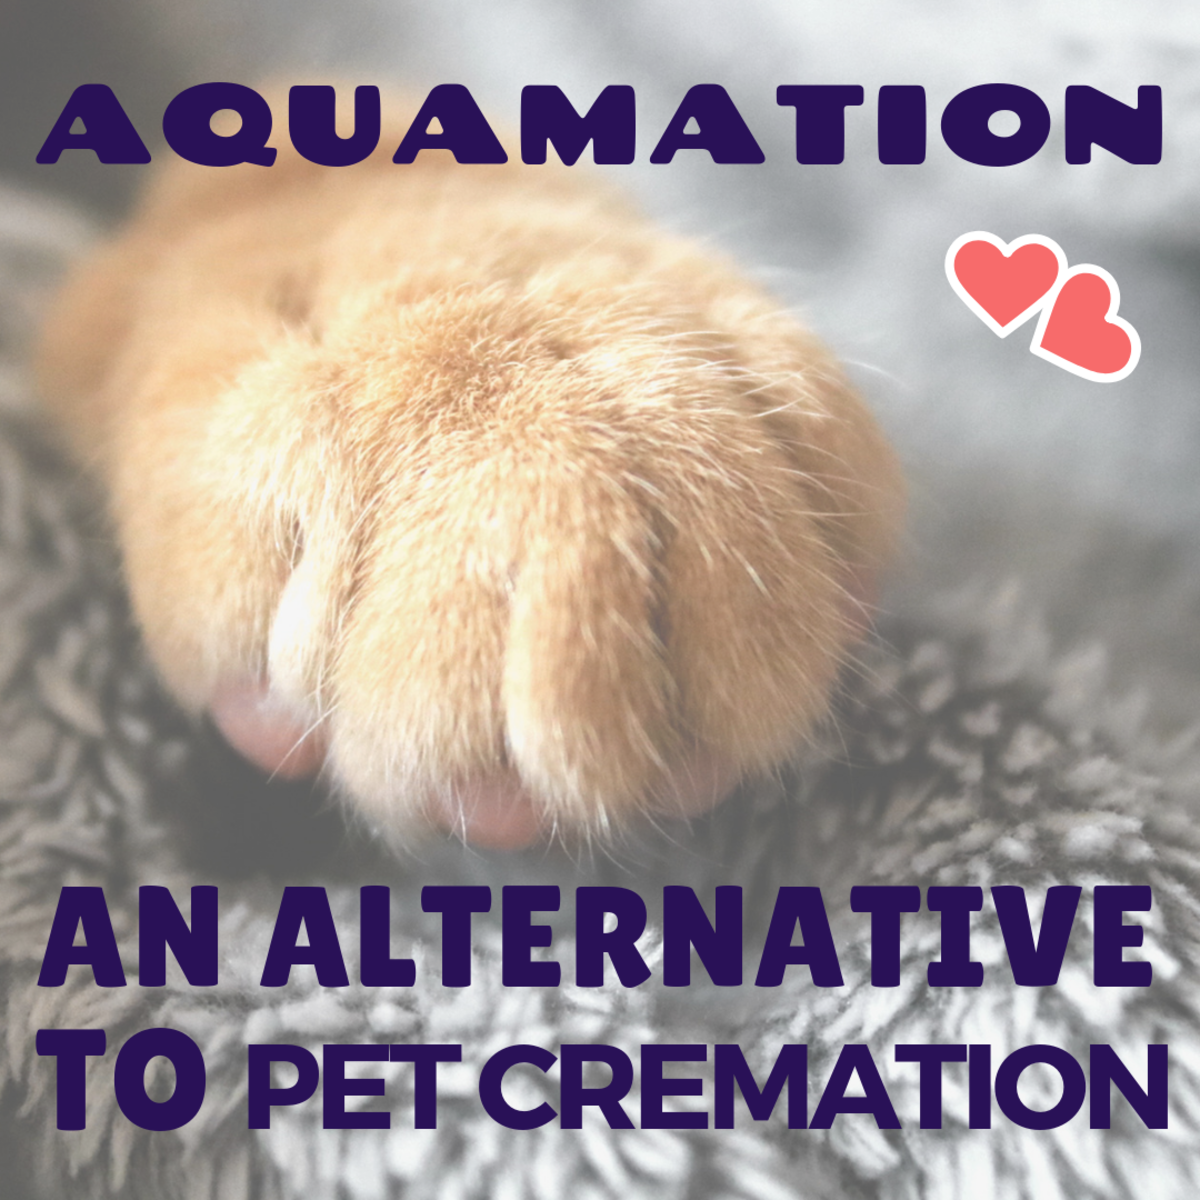 Alternative Burial and Cremation for Pets